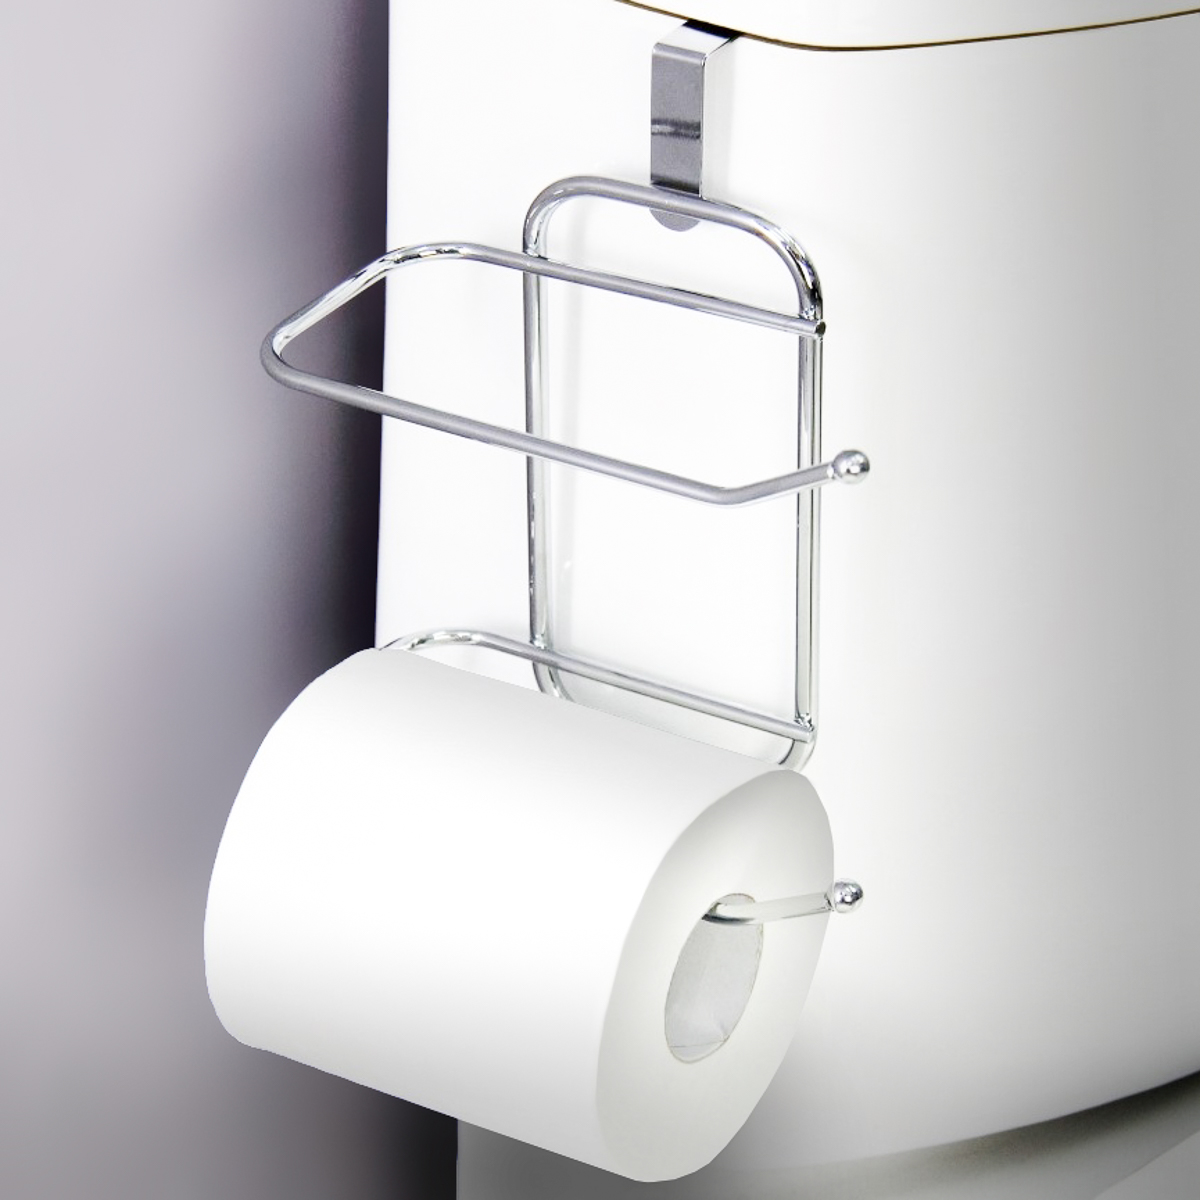 White Toilet Tissue Holder - Walmart.com